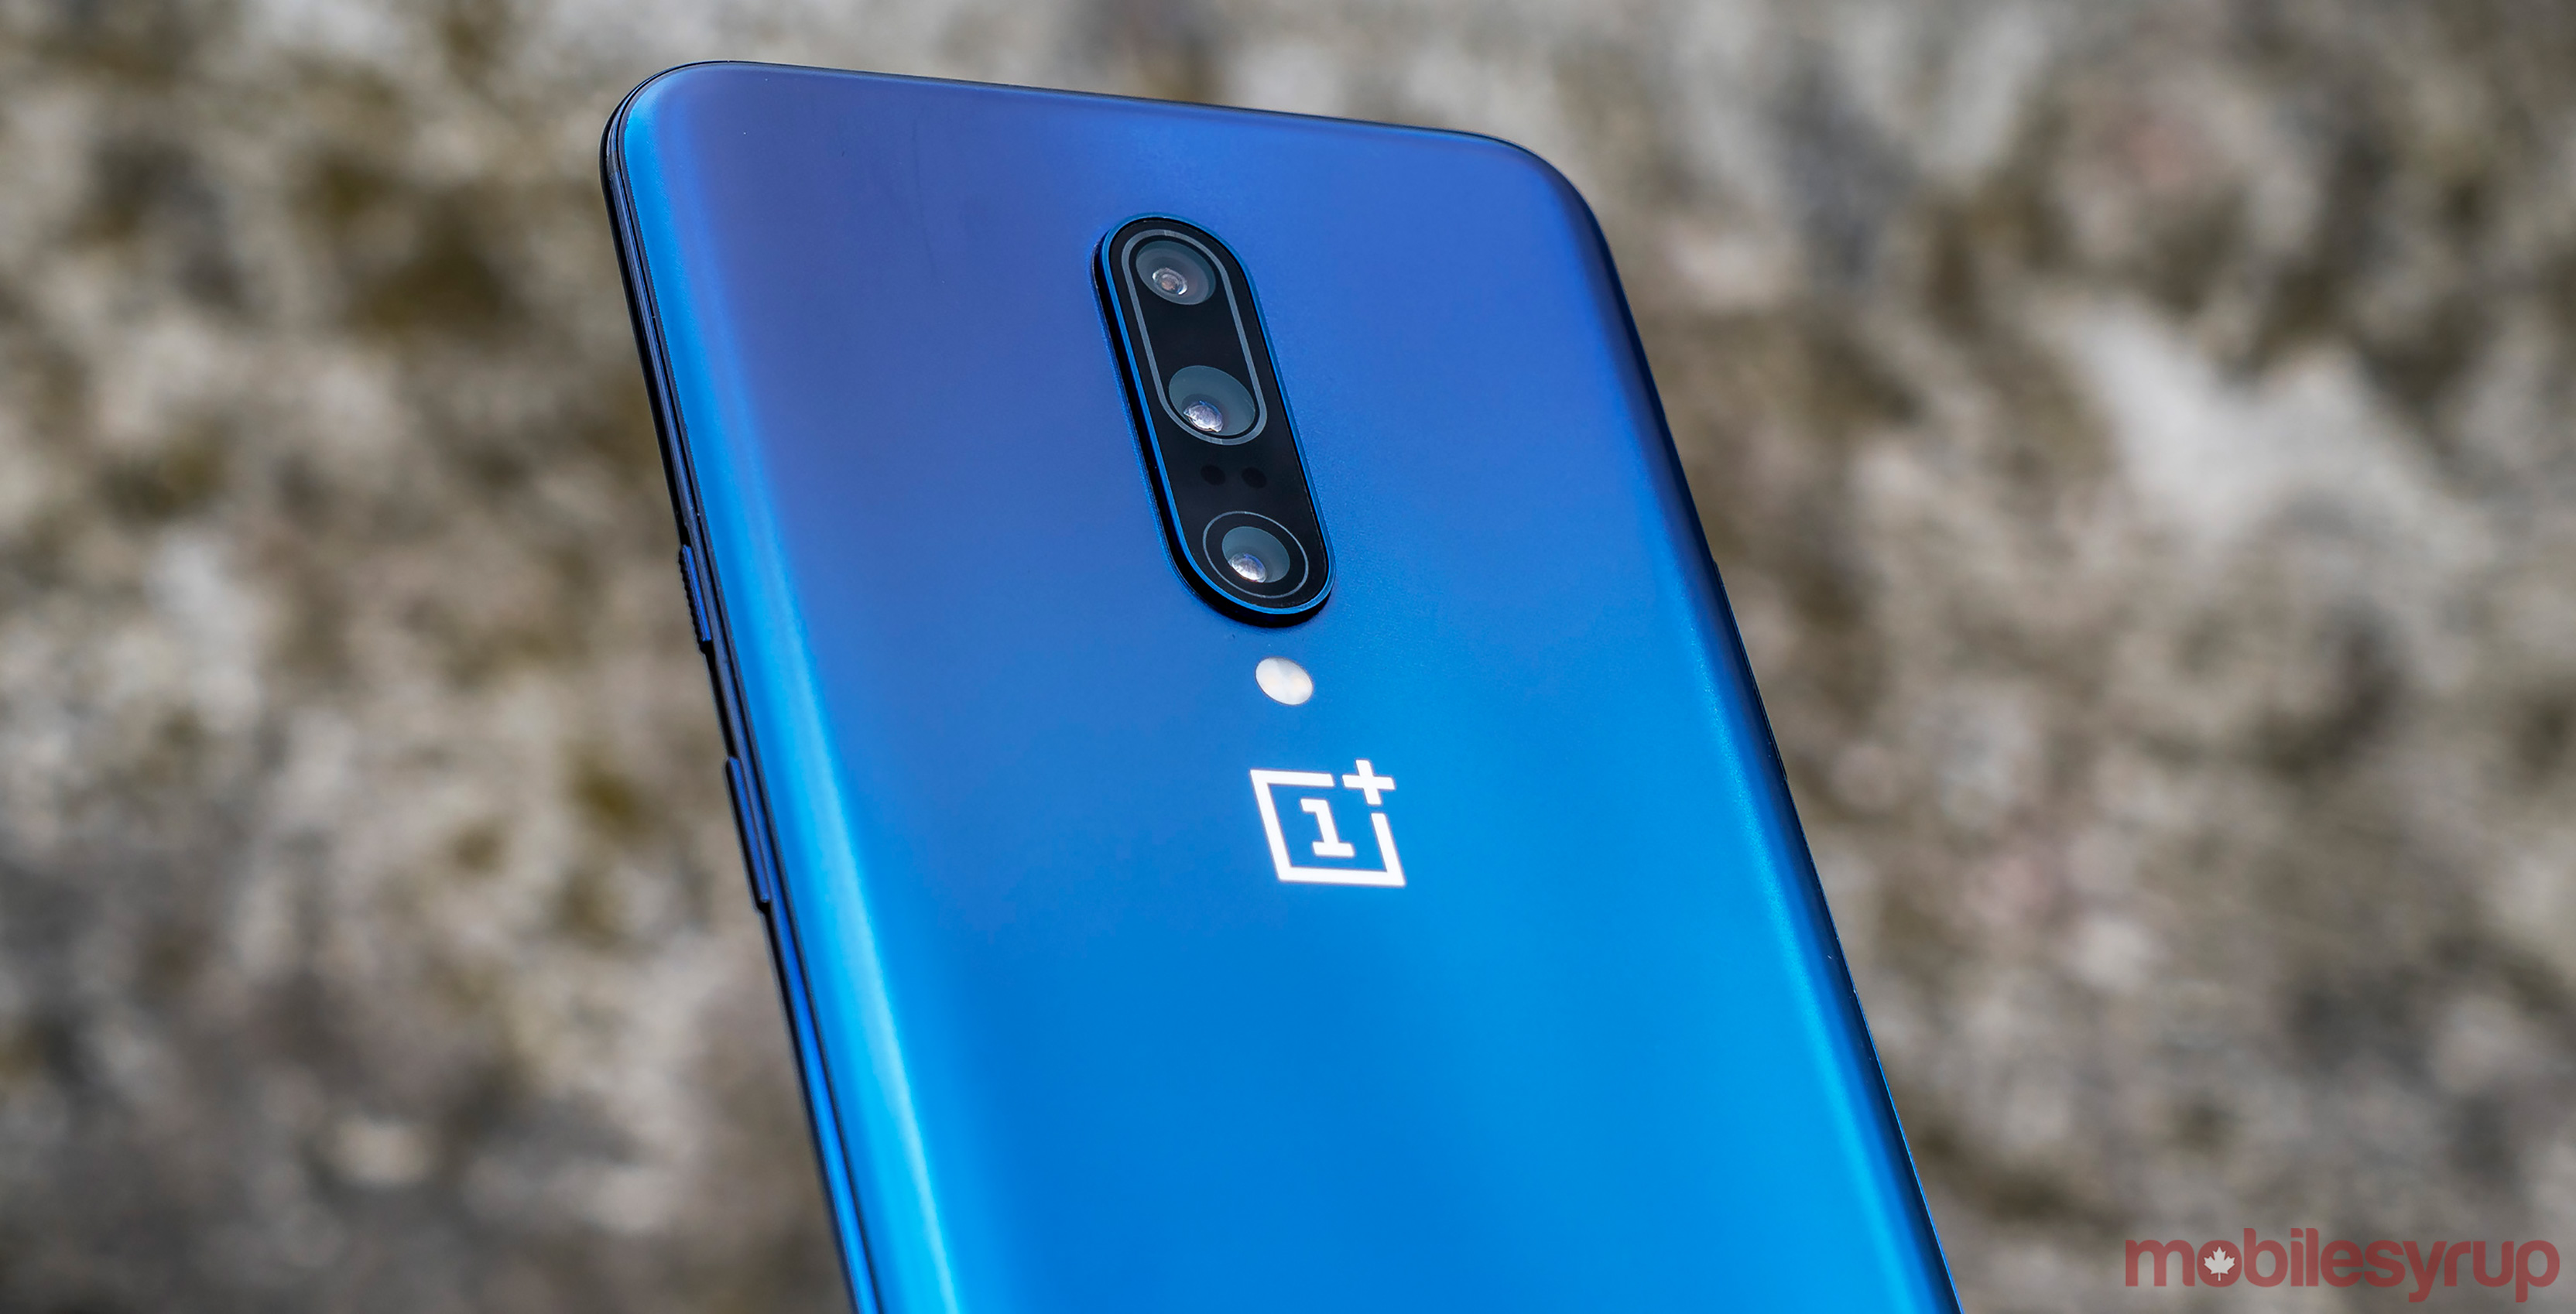 OnePlus promises to fix 'ghost touch' issue that plagues